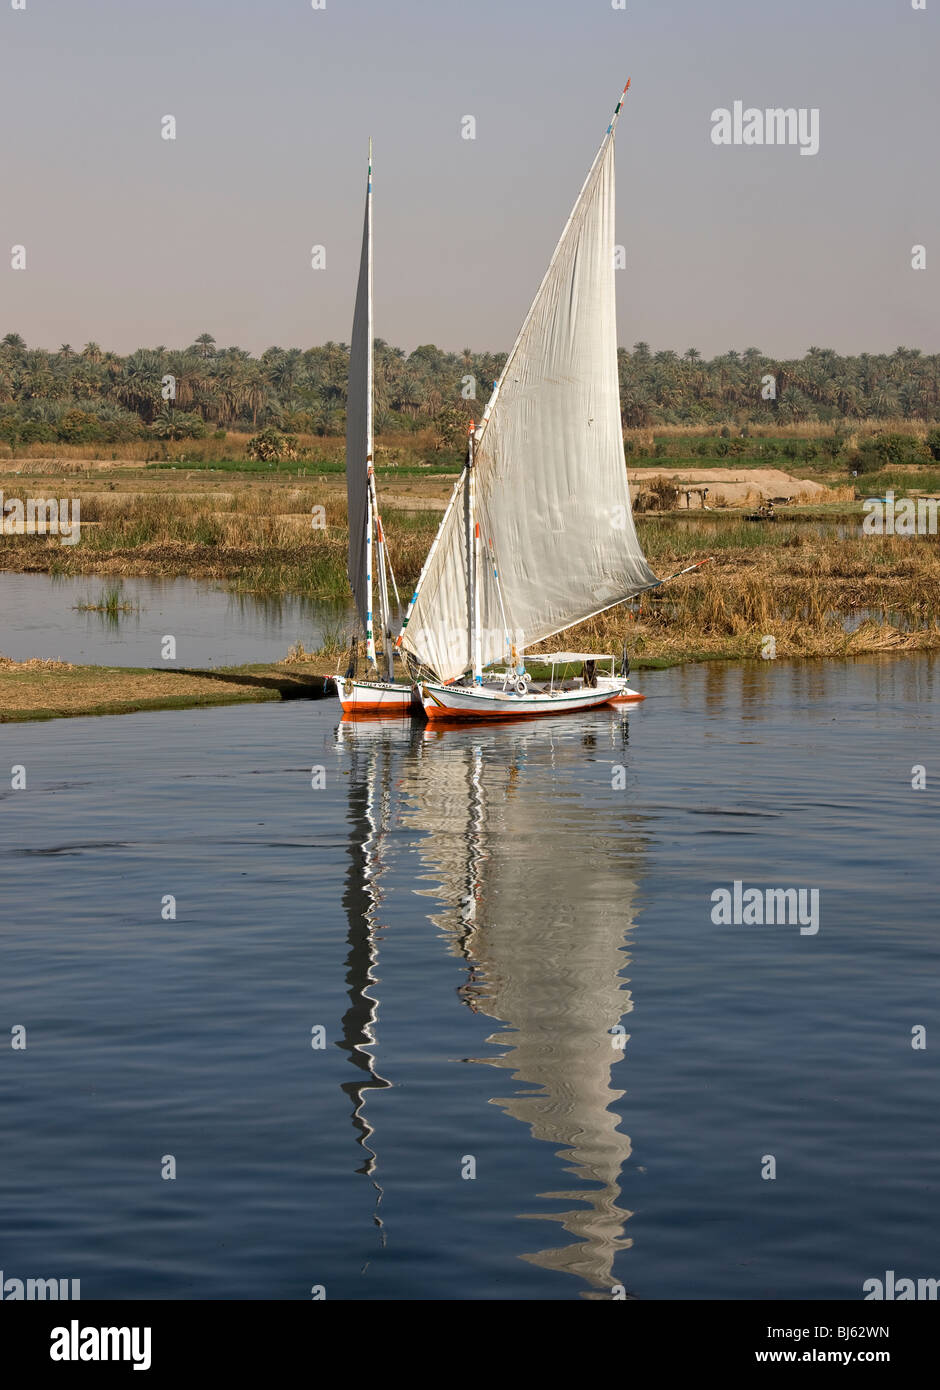 Two Feluccas stationary along the bank of the river Nile. - Stock Image